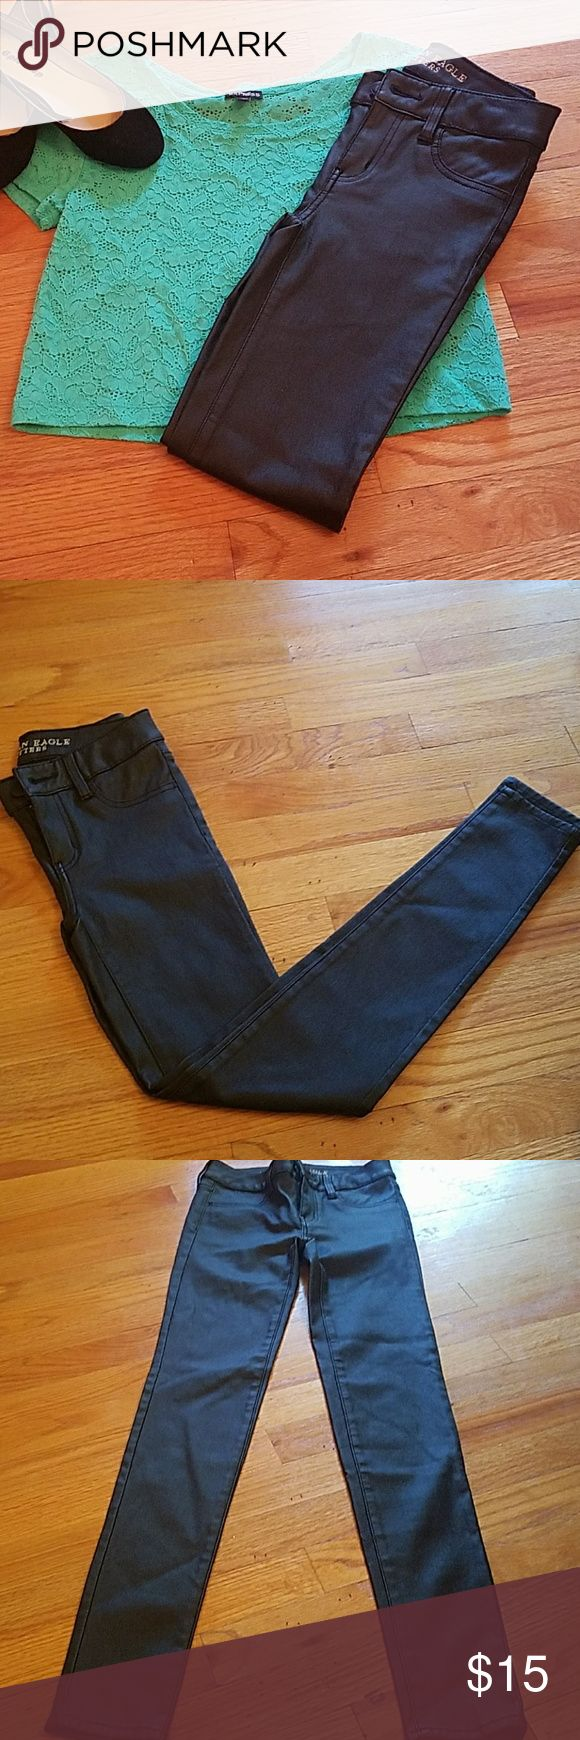 American Eagle Faux Leather Jeggings size 0 A new pair of American Eagle faux leather jeggings. Has no damage and leather is in perfect condition. Great for back to school. American Eagle Outfitters Pants Leggings